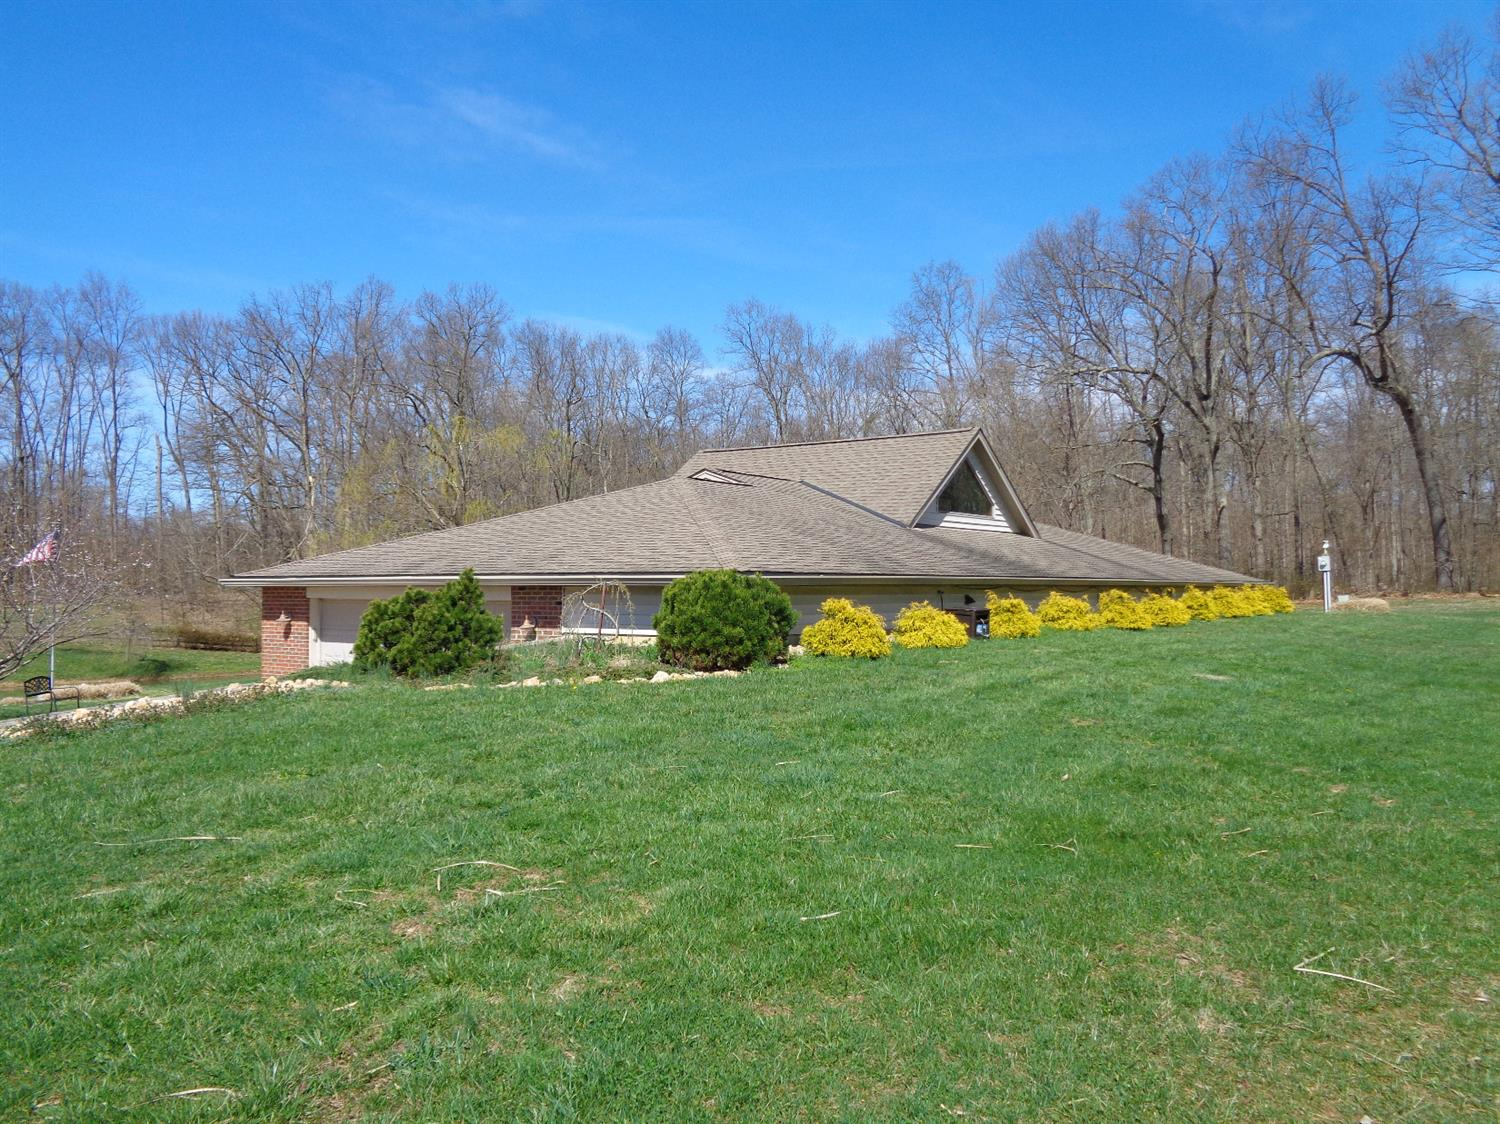 Photo 2 for 20161 Schaefer Rd Manchester, IN 47041